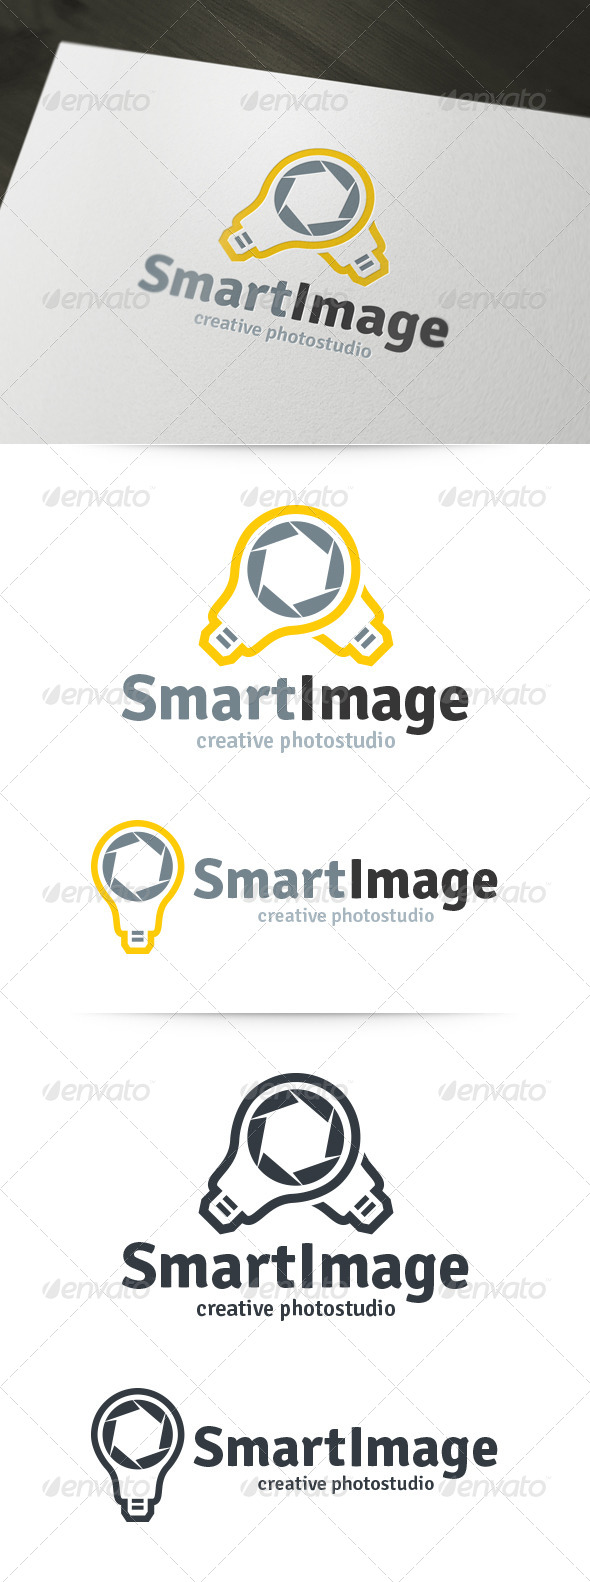 GraphicRiver Smart Image Photography Logo 6188162